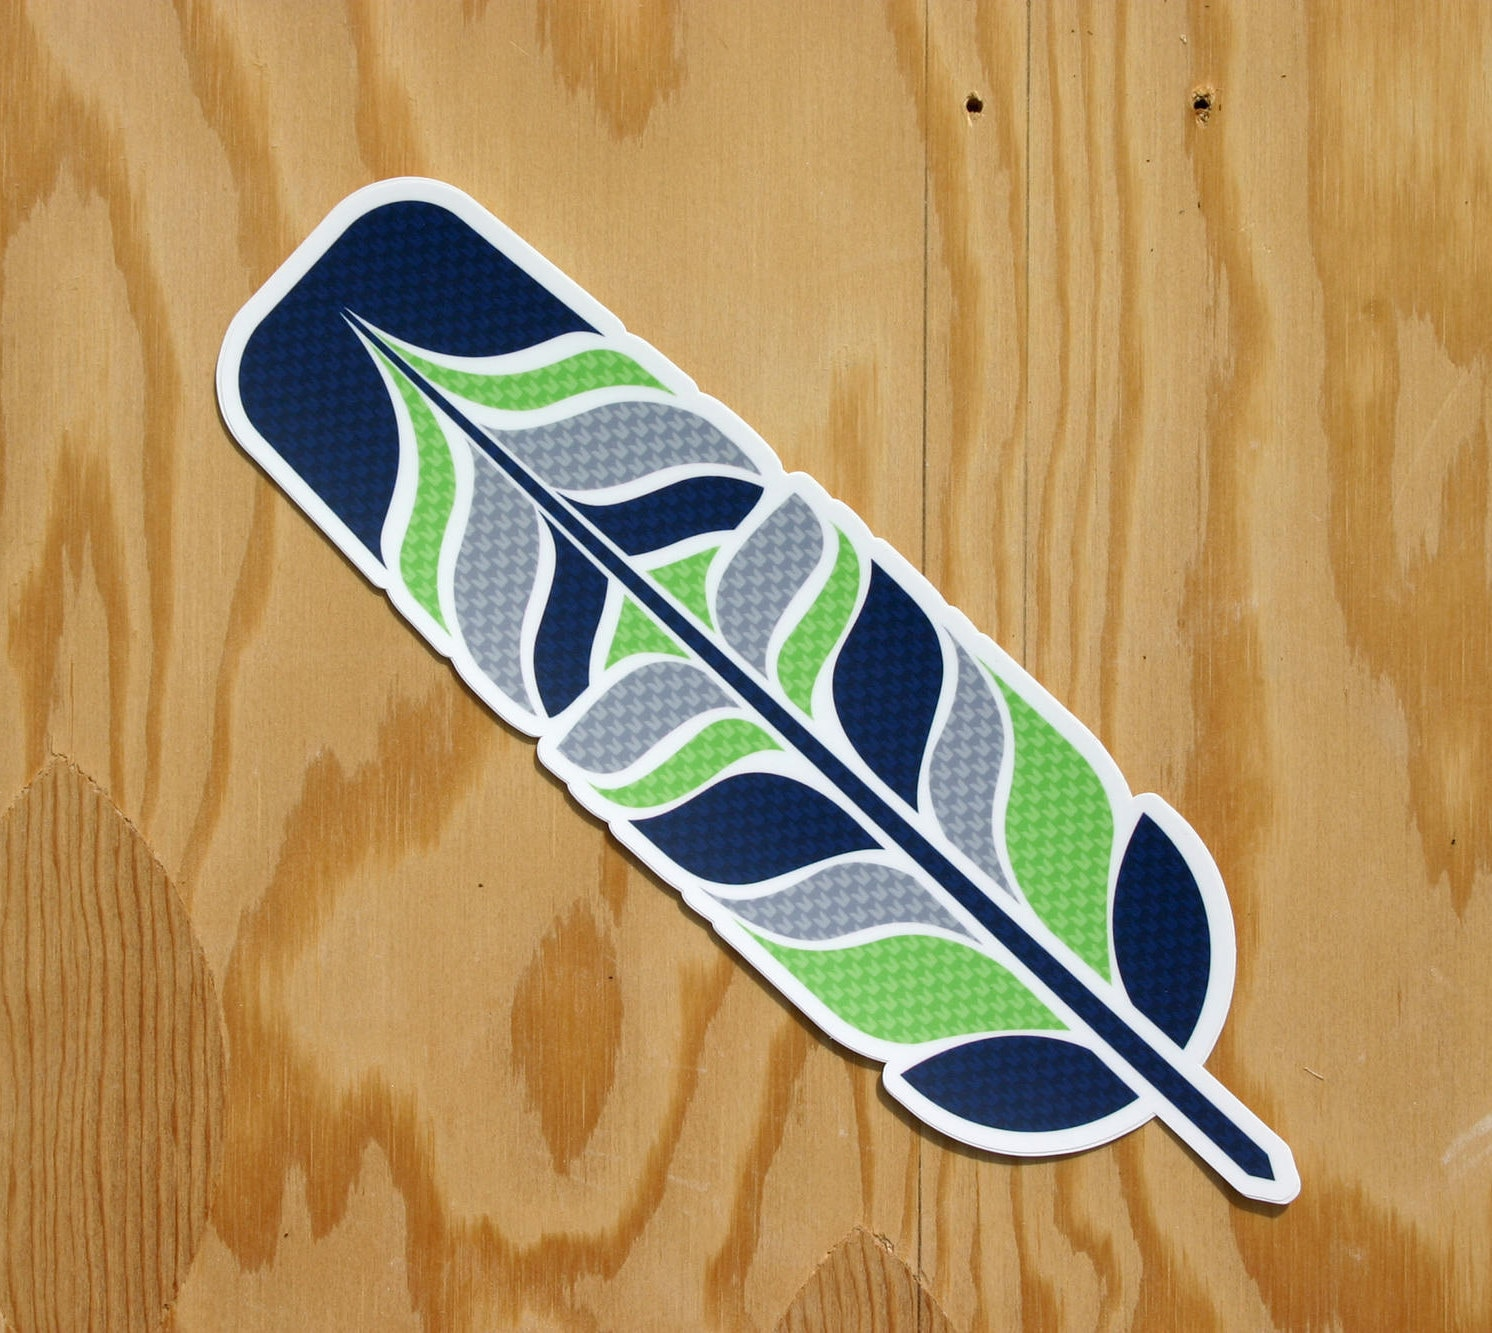 Seahawks Feather Sticker Tribal Feather 12 Feather